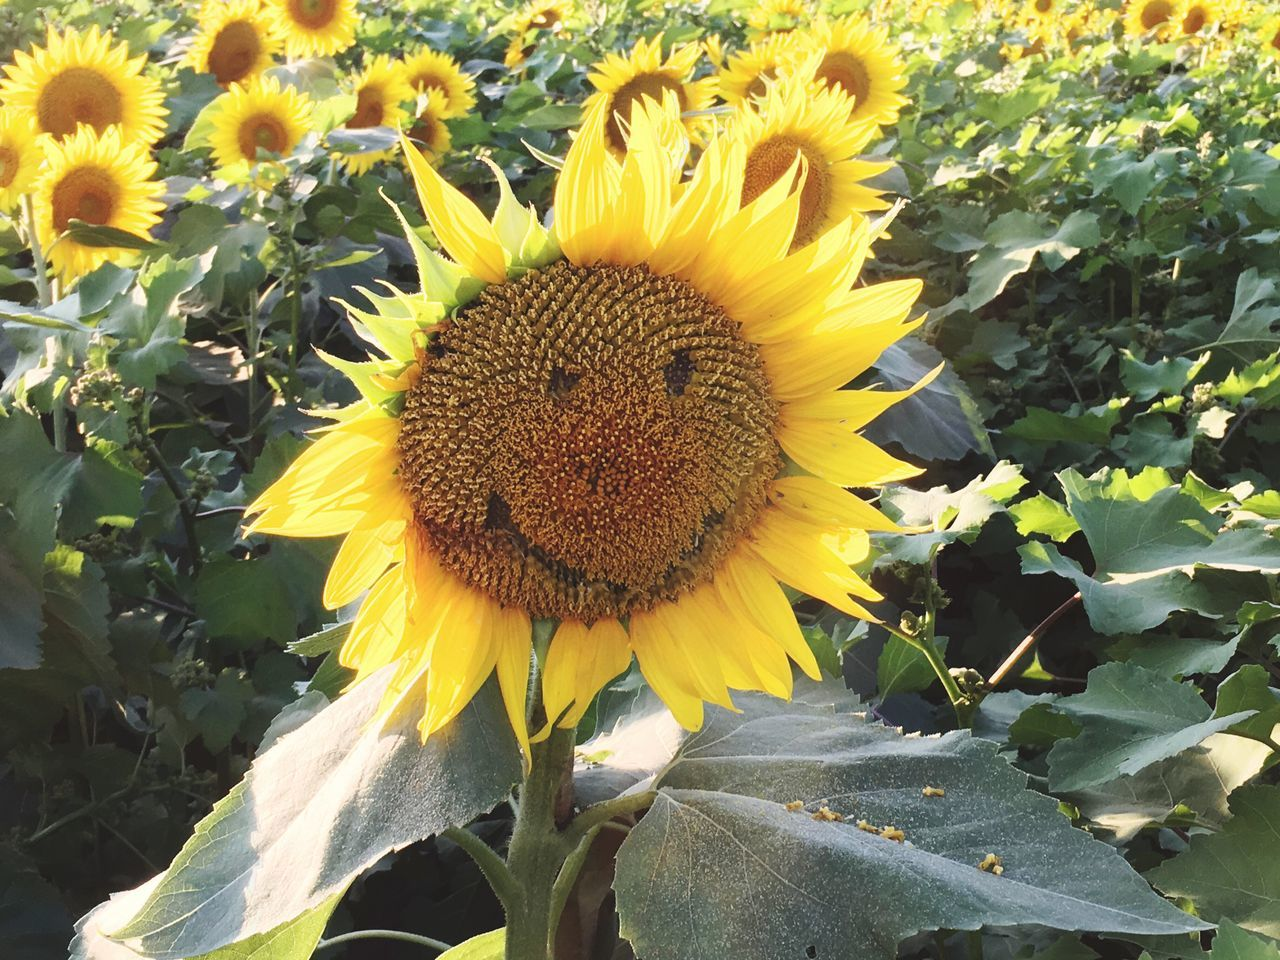 Happy Sunflower. Flower Yellow Fragility Growth Beauty In Nature Petal Freshness Flower Head Nature Plant Blooming Outdoors Sunflower No People Pollen Day Close-up Sunflower